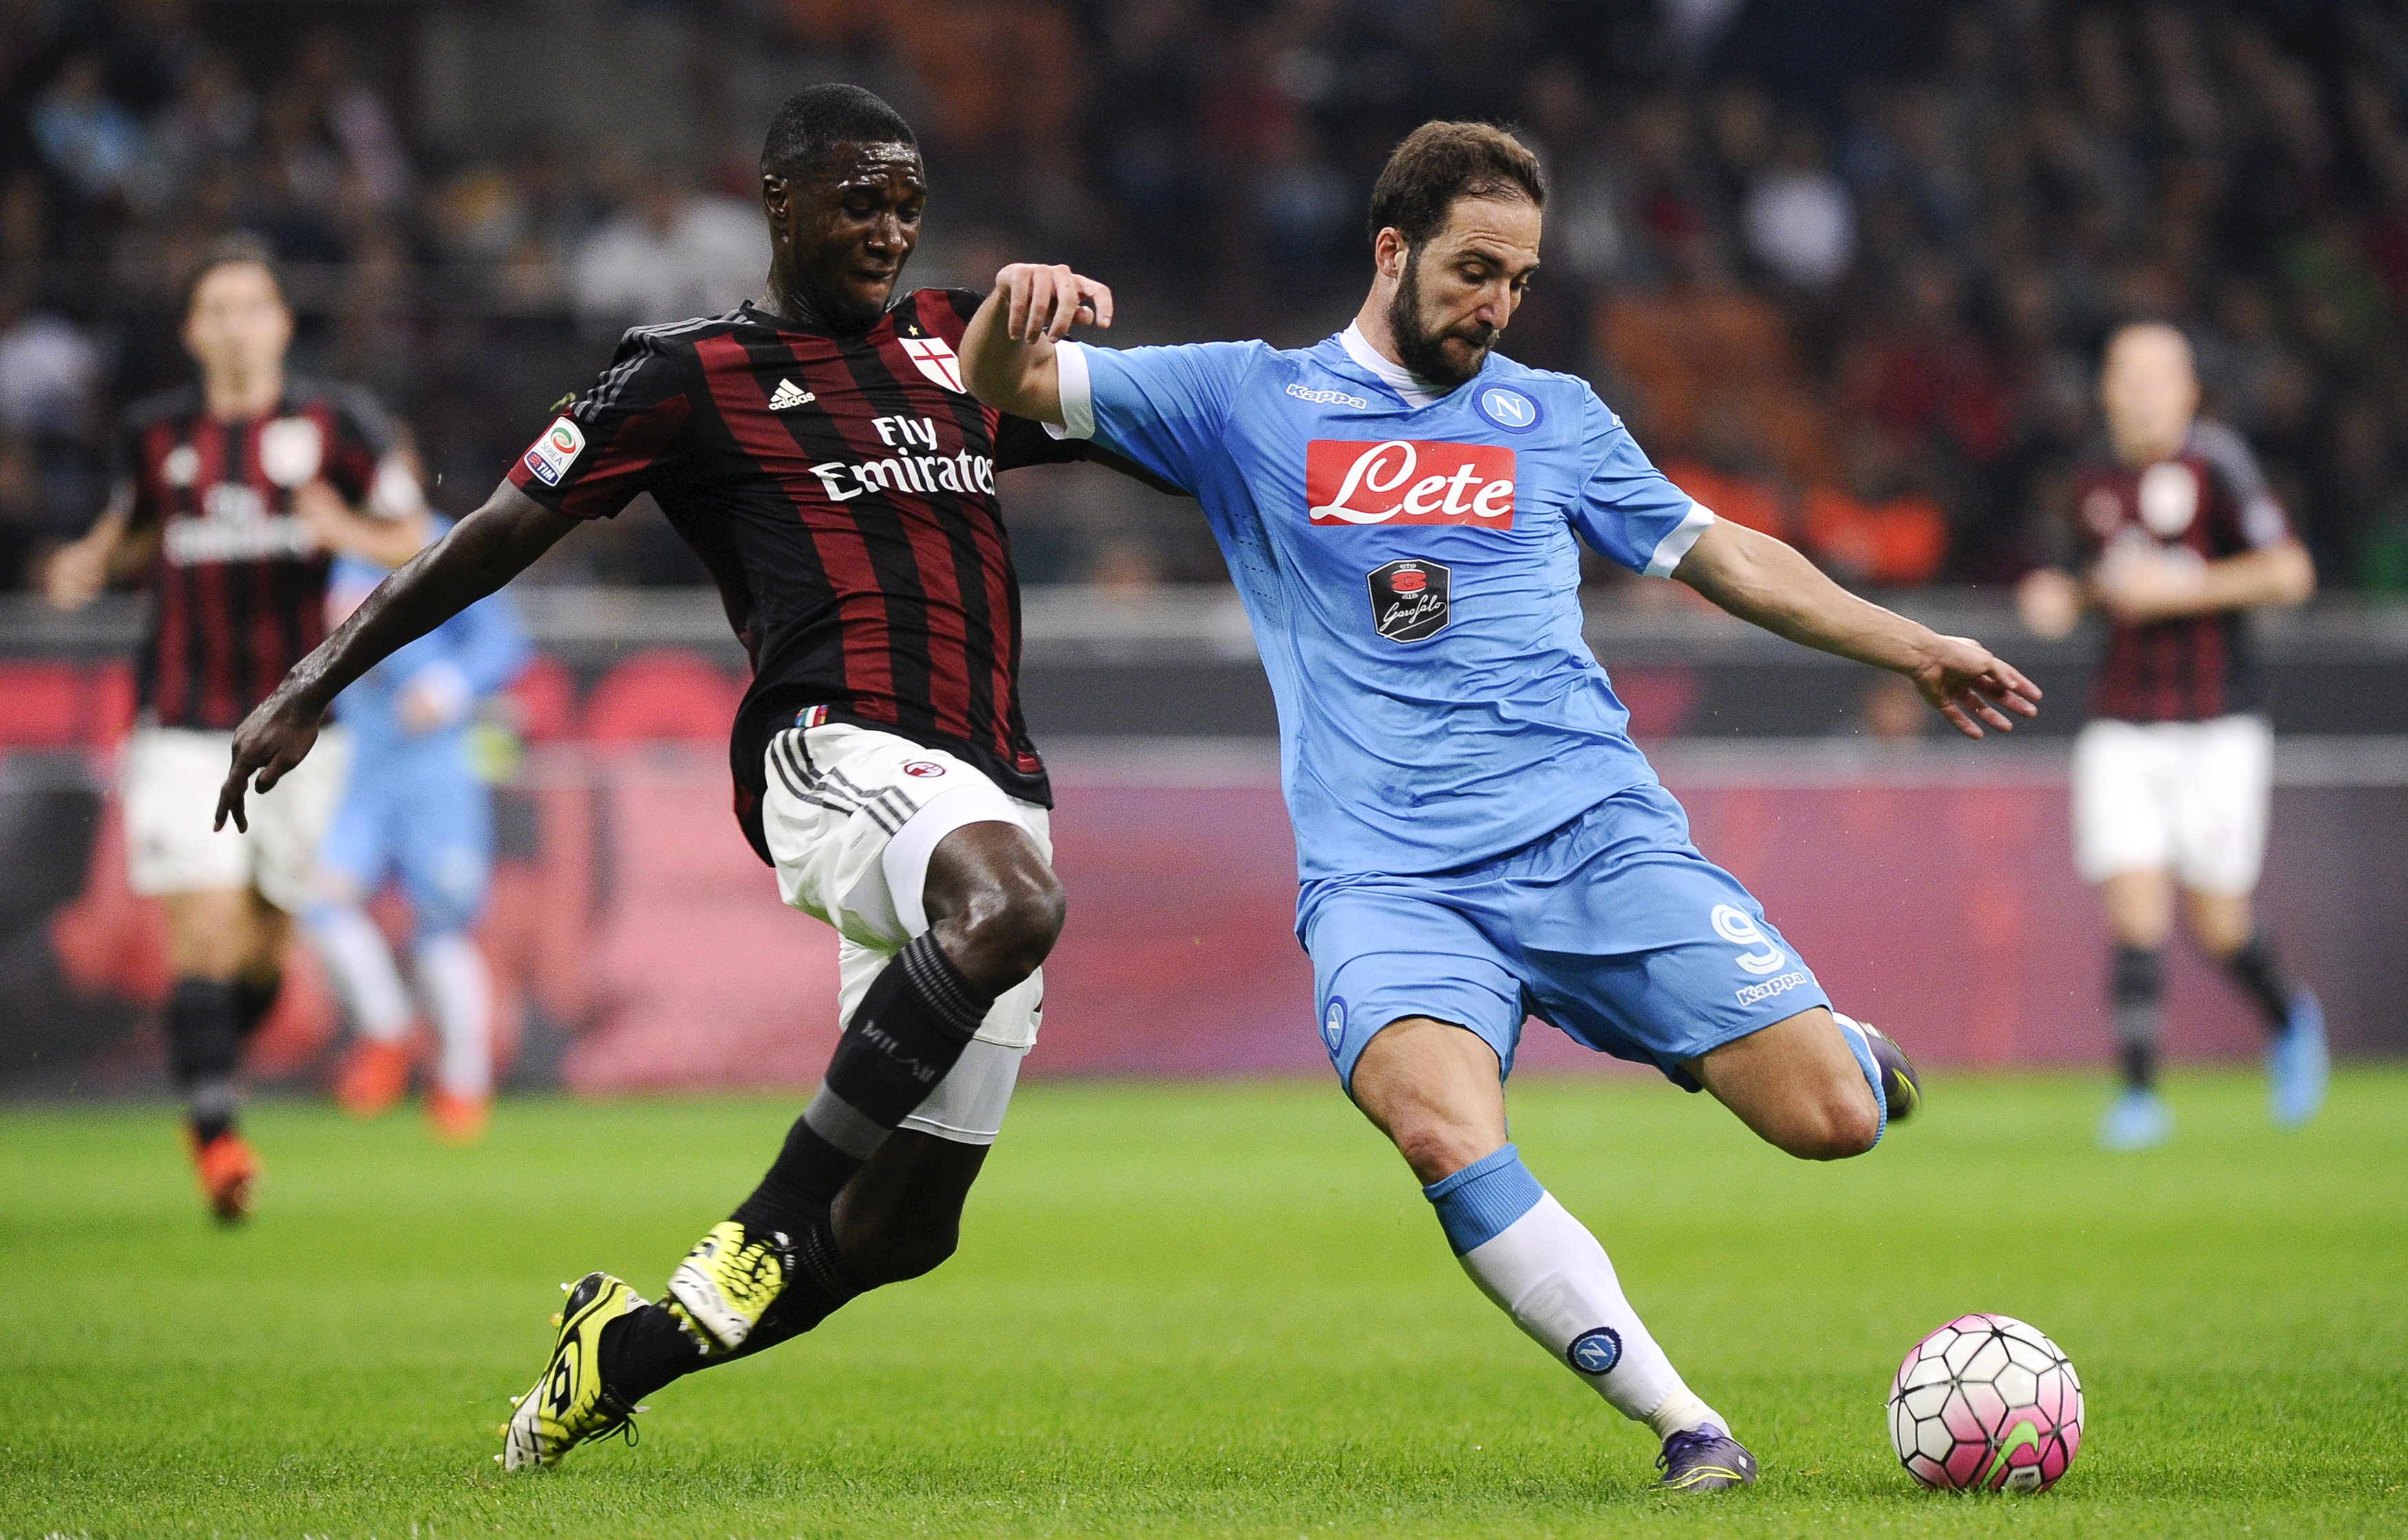 AC Milan's Zapata challenges Napoli's Higuain during their Italian Serie A soccer match at the San Siro stadium in Milan